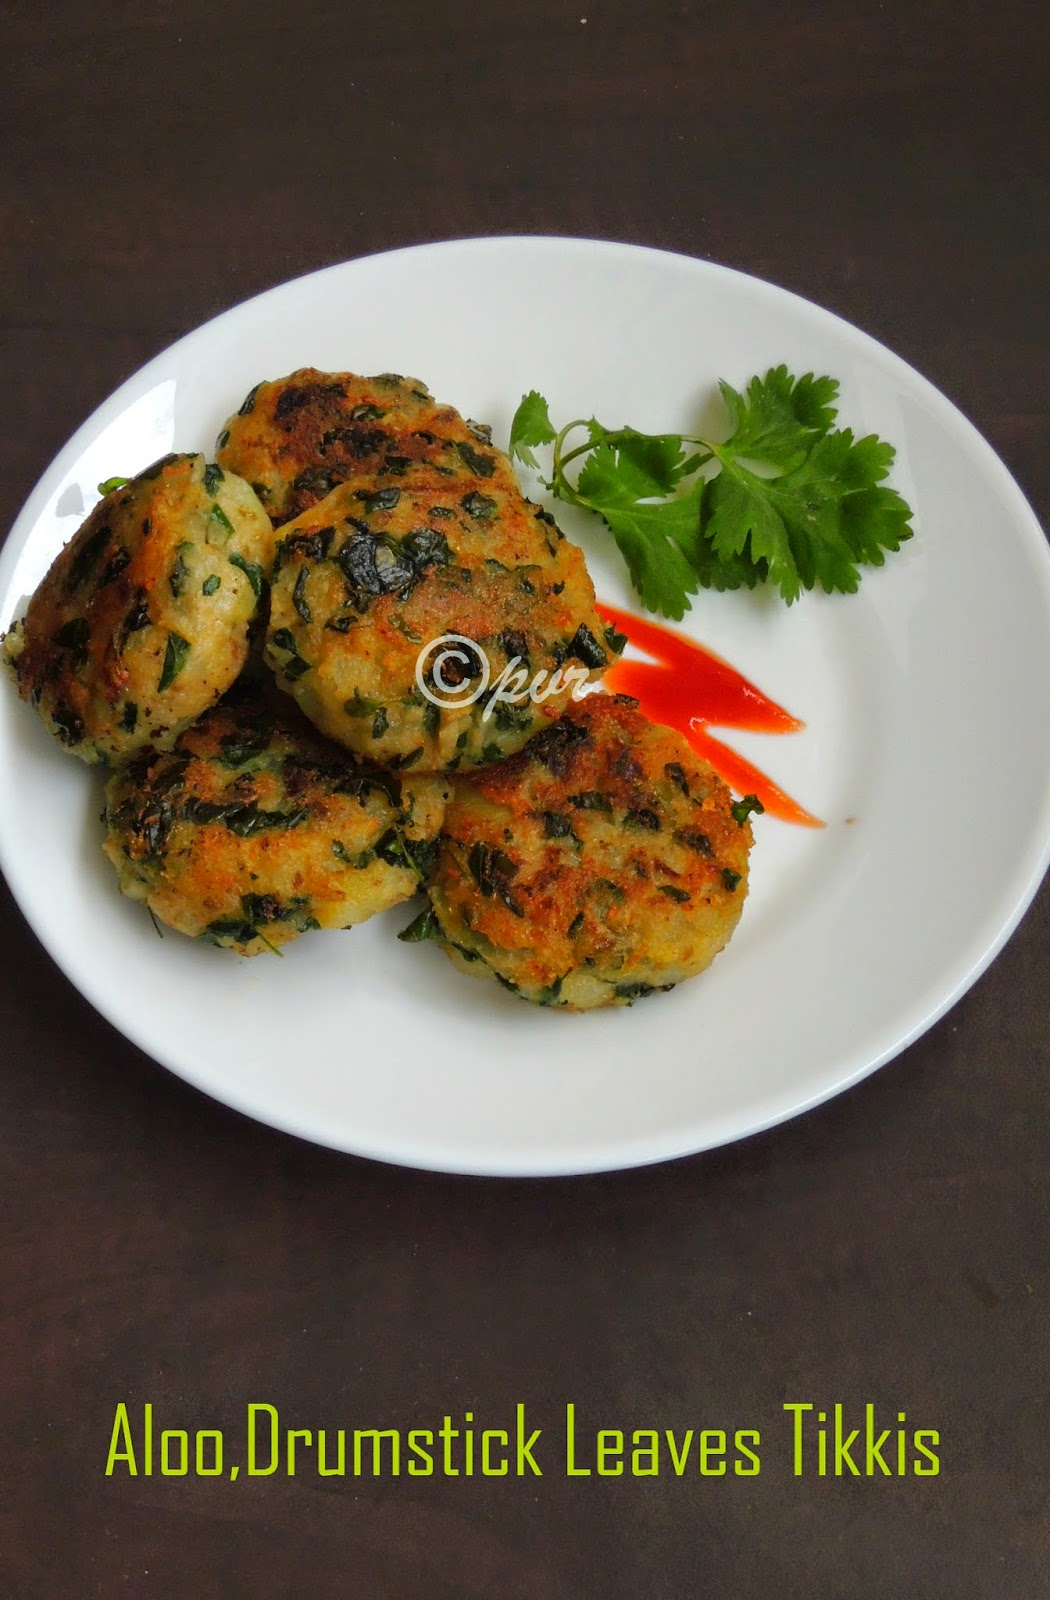 Aloo tikkis with greens, drumstick leaves aloo cutlets